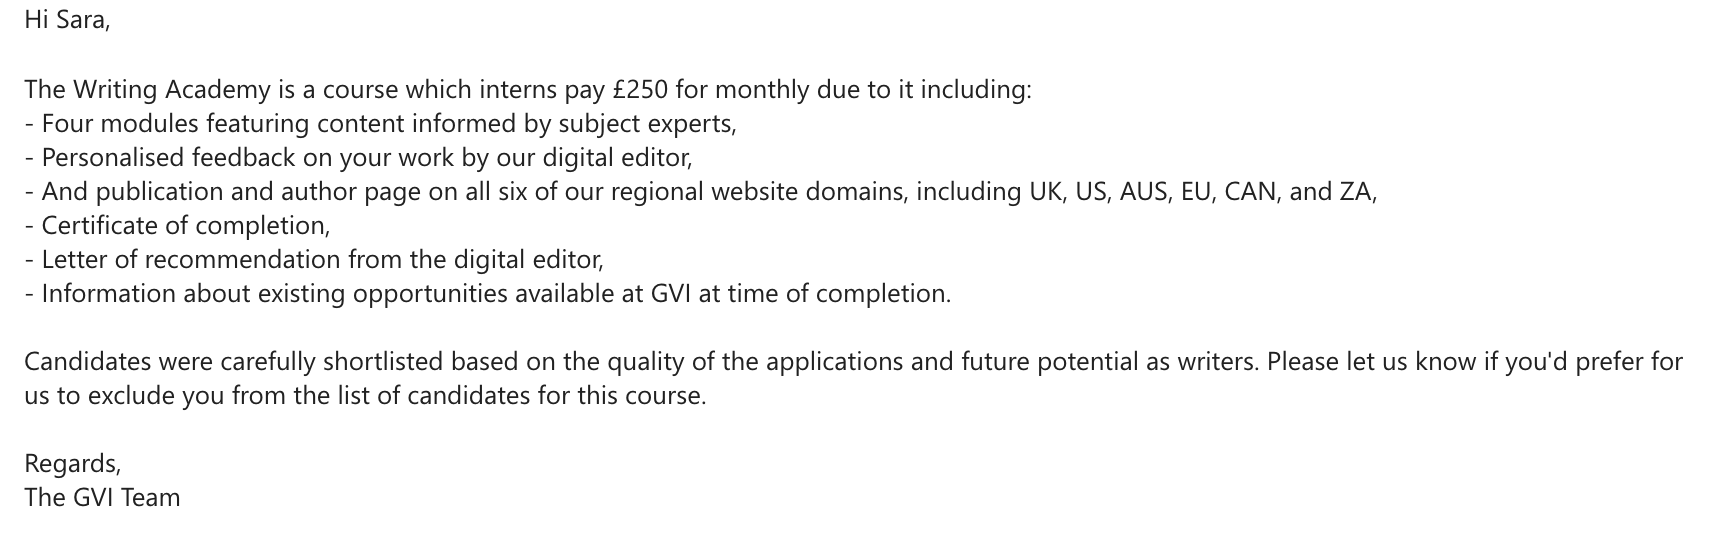 Pay us £1000 to be an intern - bring back the days of unpaid internships!